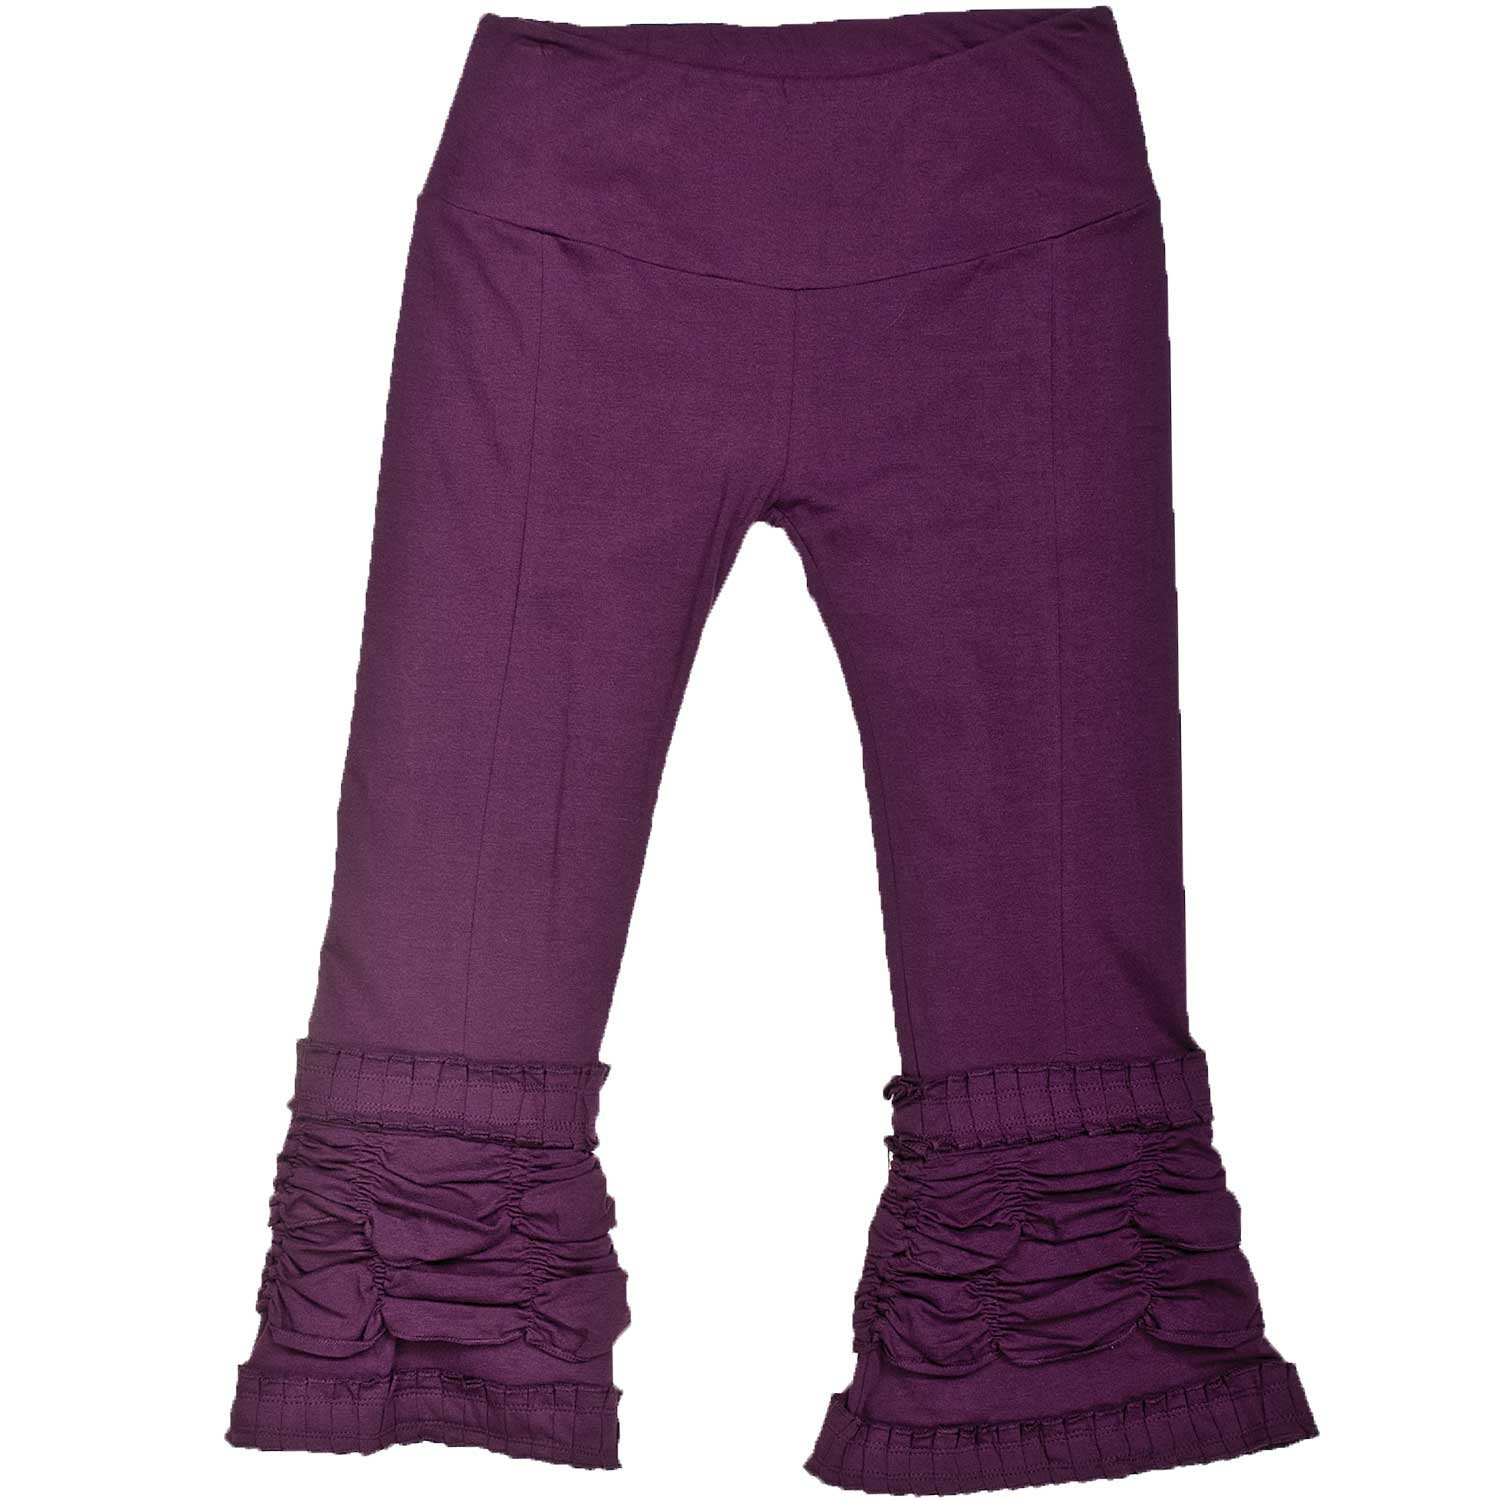 Lady Pirate's Fancy Berry Purple Ruffle Ruched Capri Pants - DeluxeAdultCostumes.com